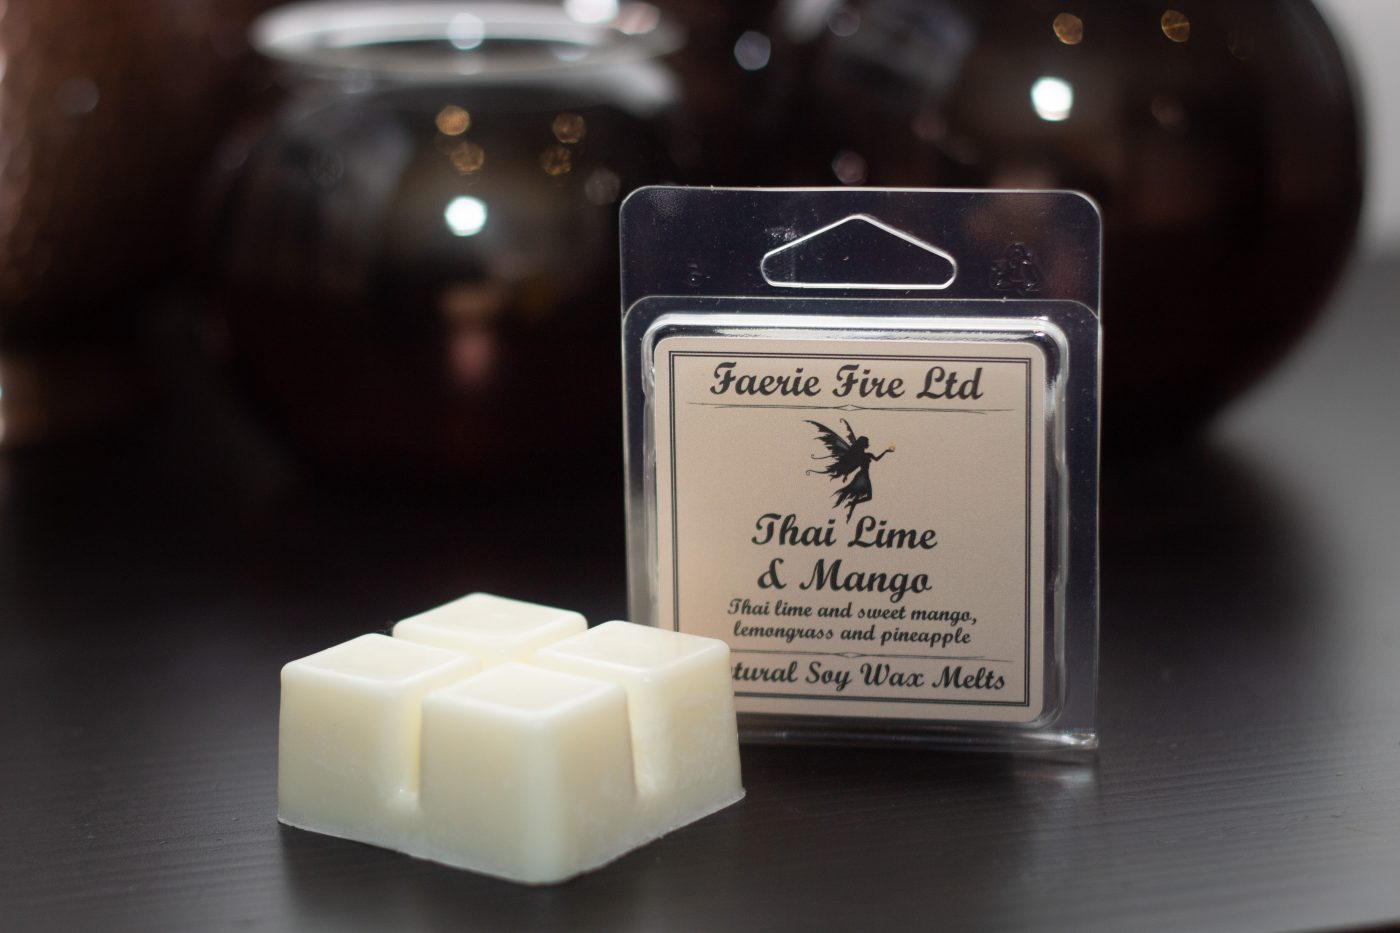 Thai Lime and Mango Wax Melt Clam Shell Small scaled